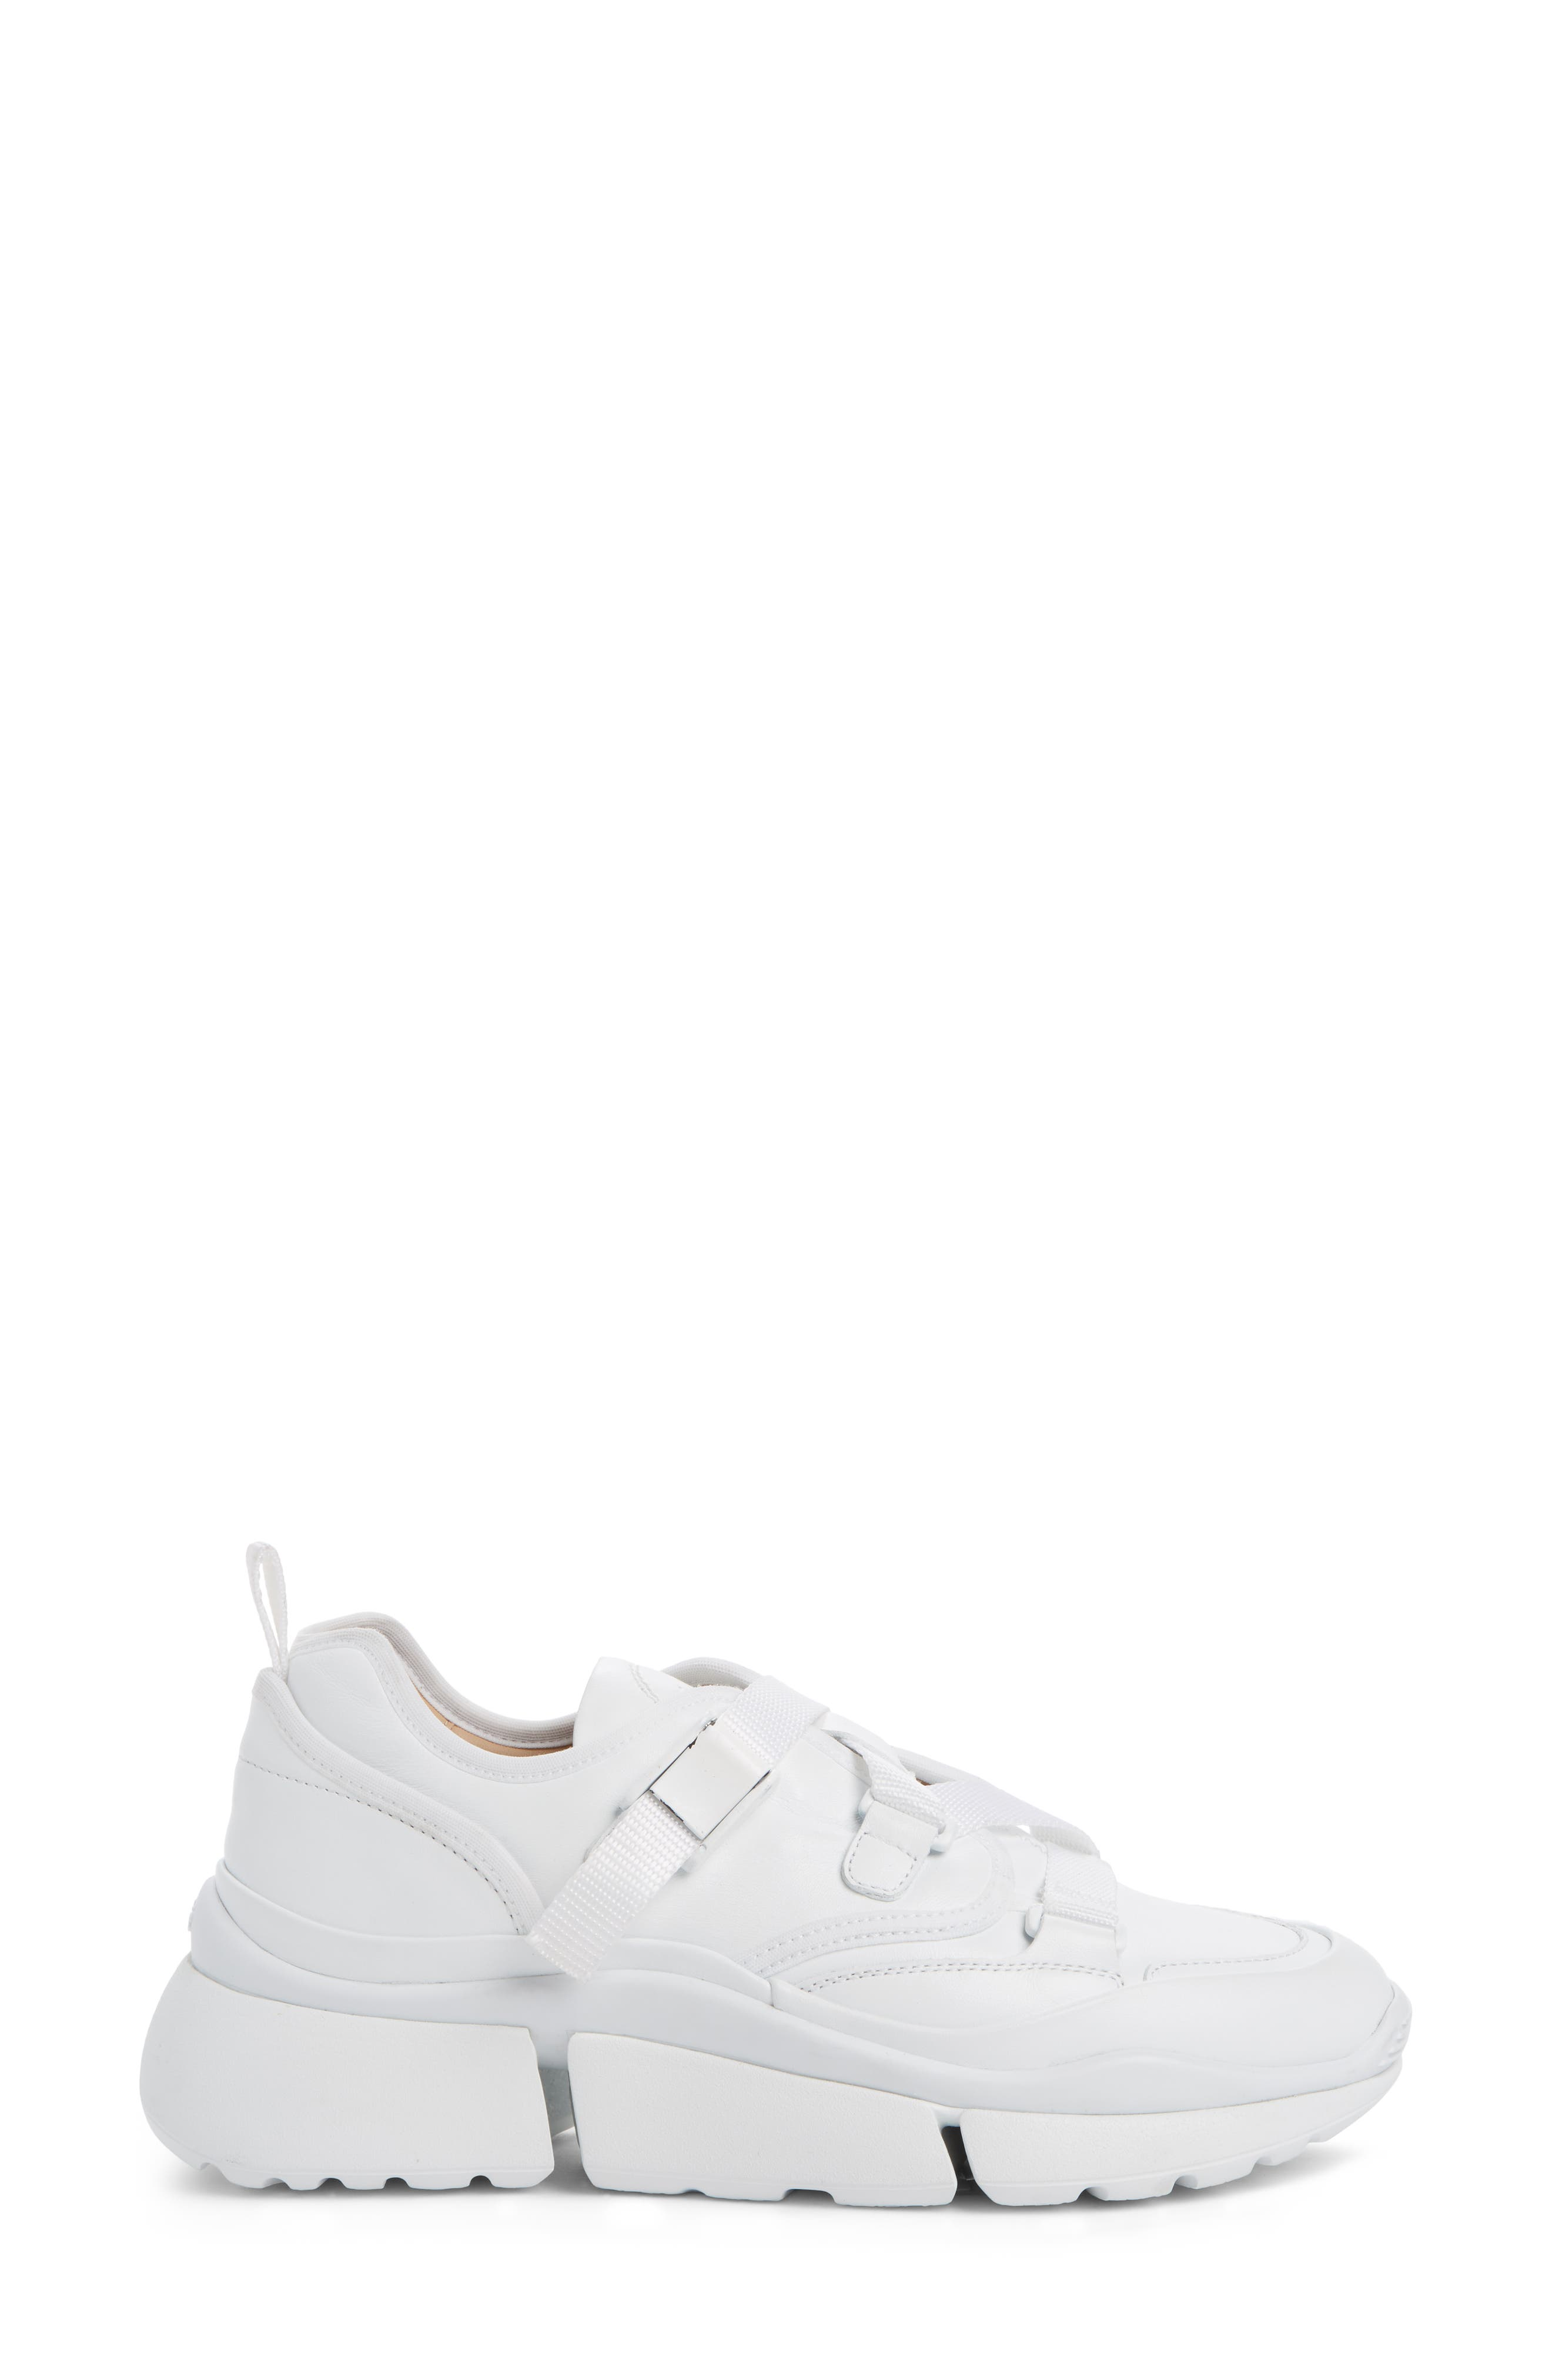 Sonnie Sneaker,                             Alternate thumbnail 3, color,                             WHITE LEATHER